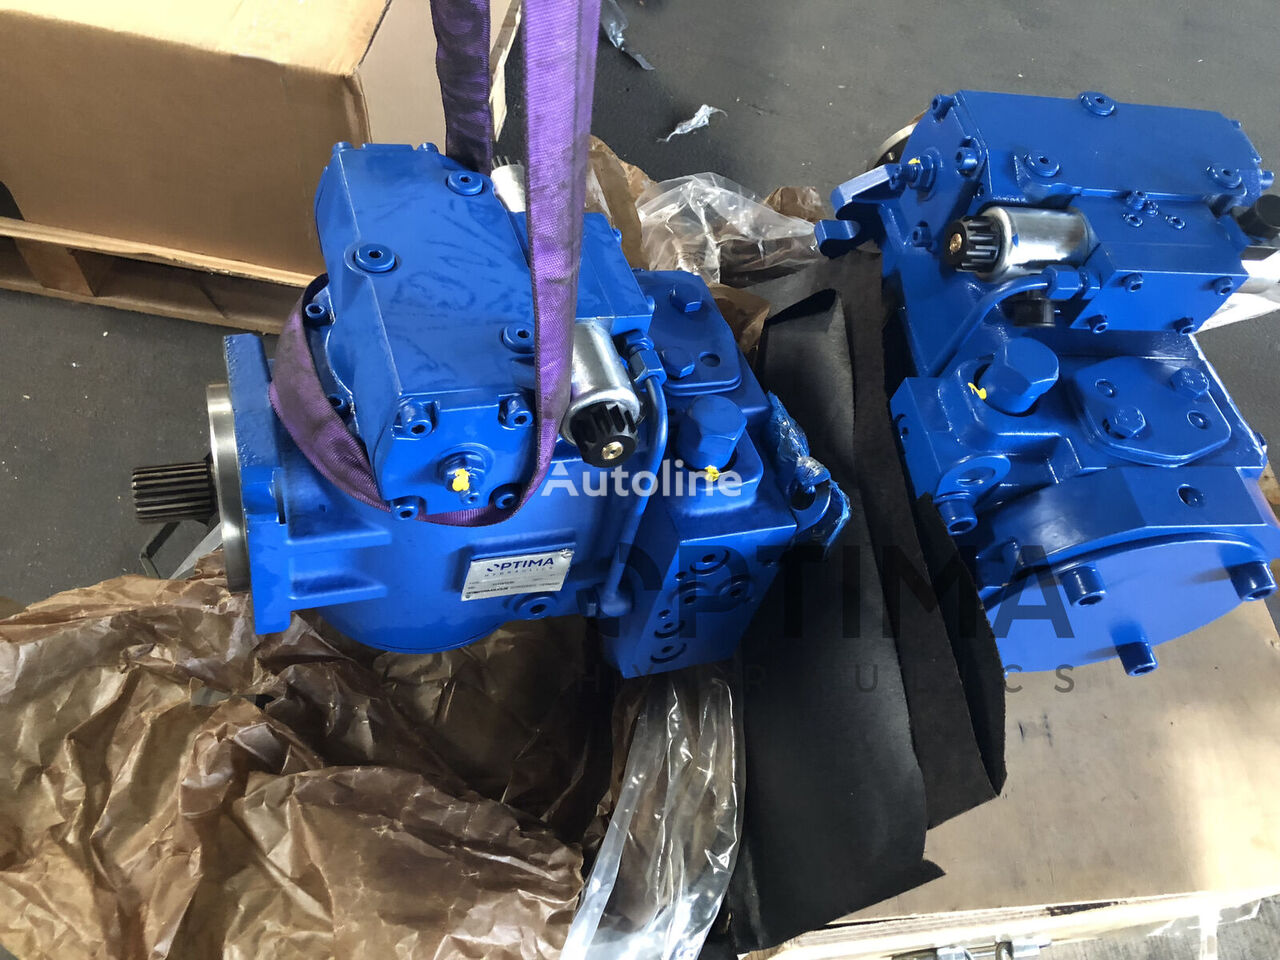 new OPTIMA REXROTH type axial piston pump for other municipal vehicles